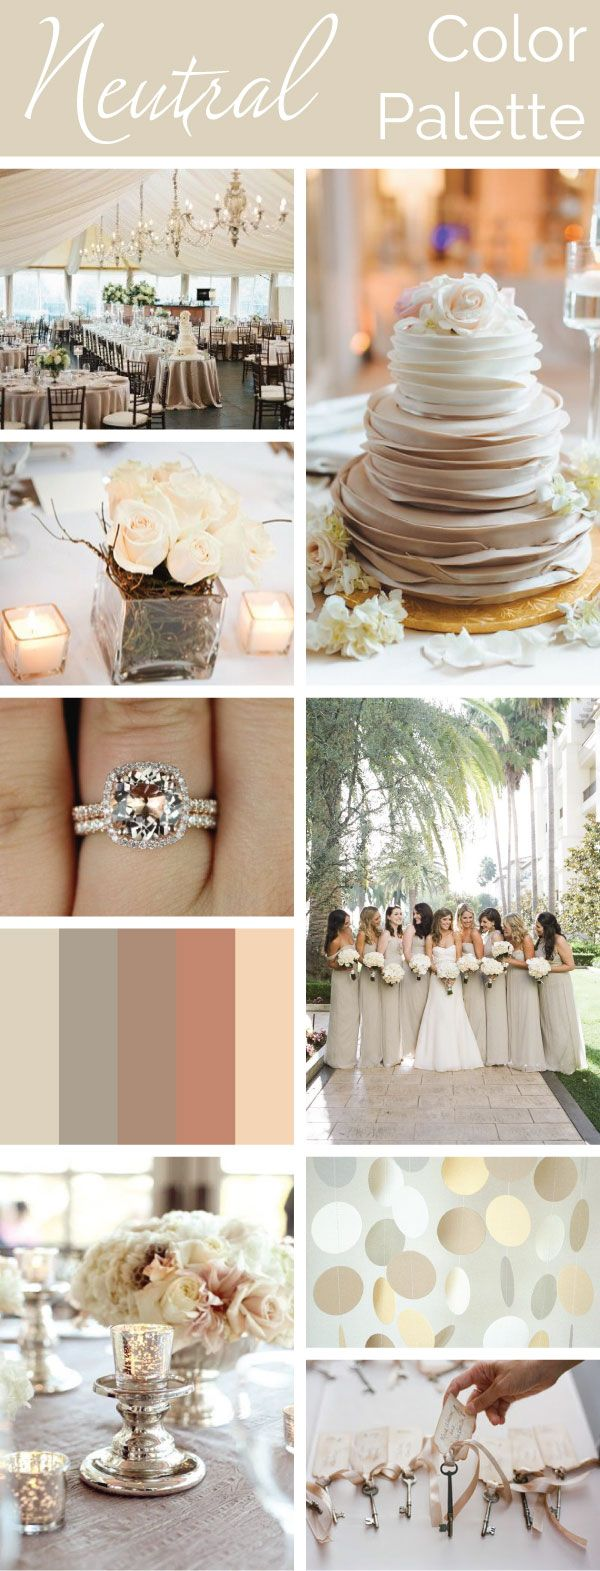 Neutral Color Neutral Color Palette Simple Elegant Versatile